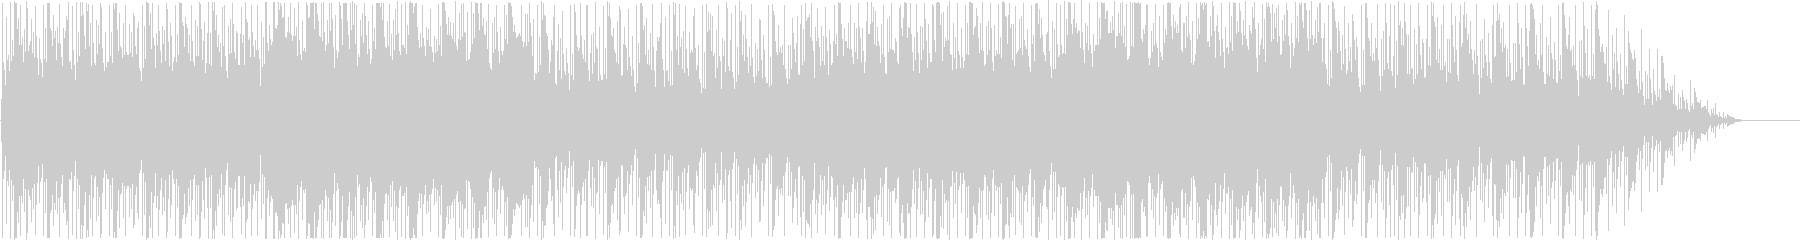 Nostalgic and fantastic BGM's unreproduced waveform